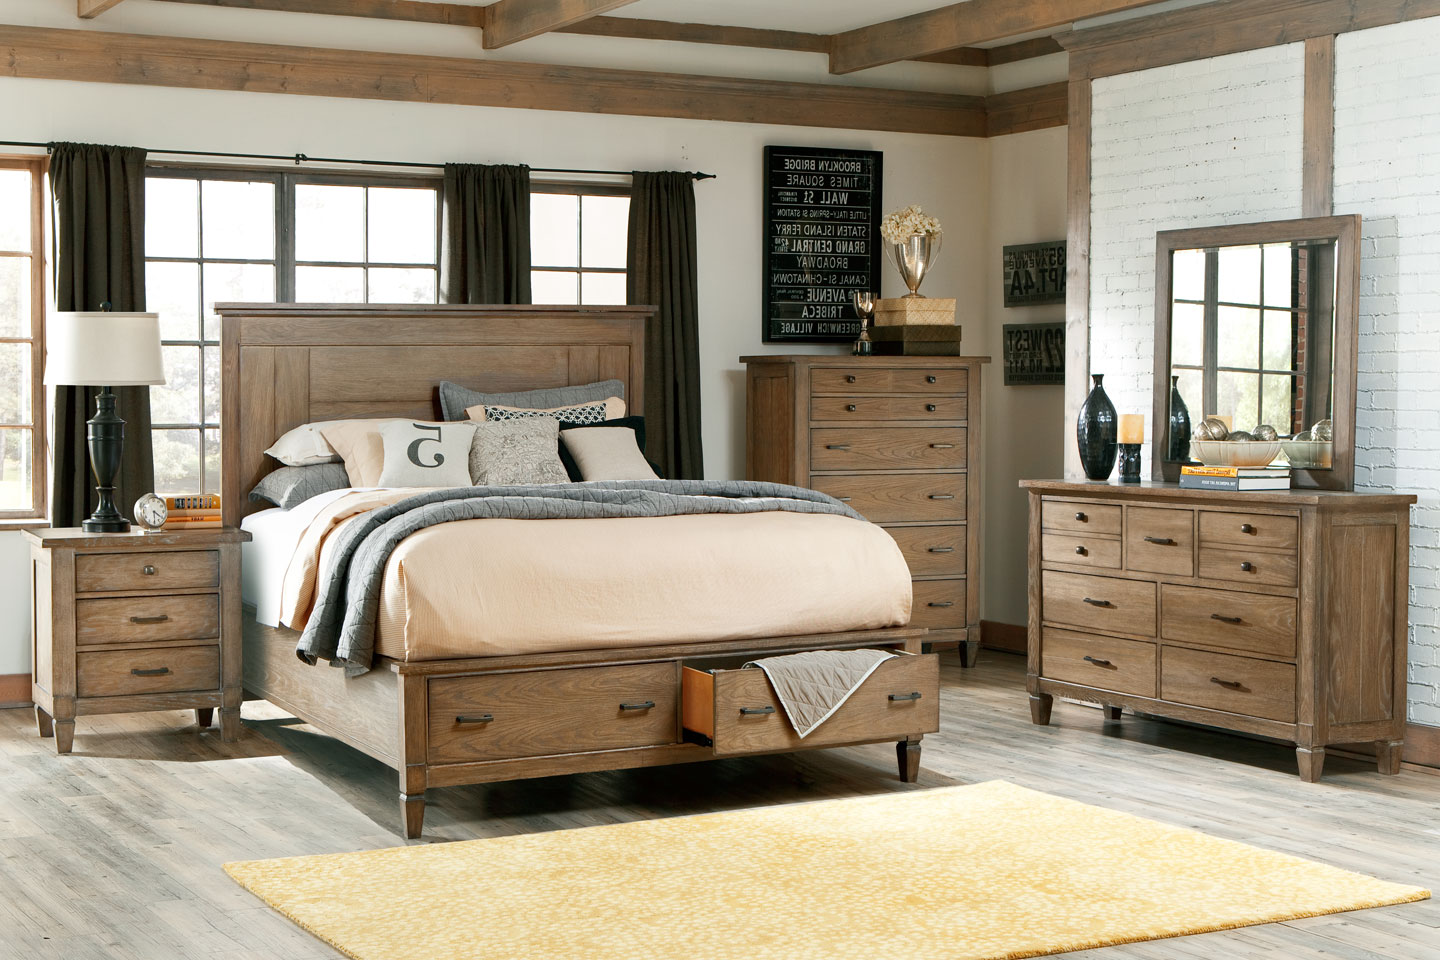 Gavin wood bedroom furniture collection wood bedroom furniture White wooden bedroom furniture sets